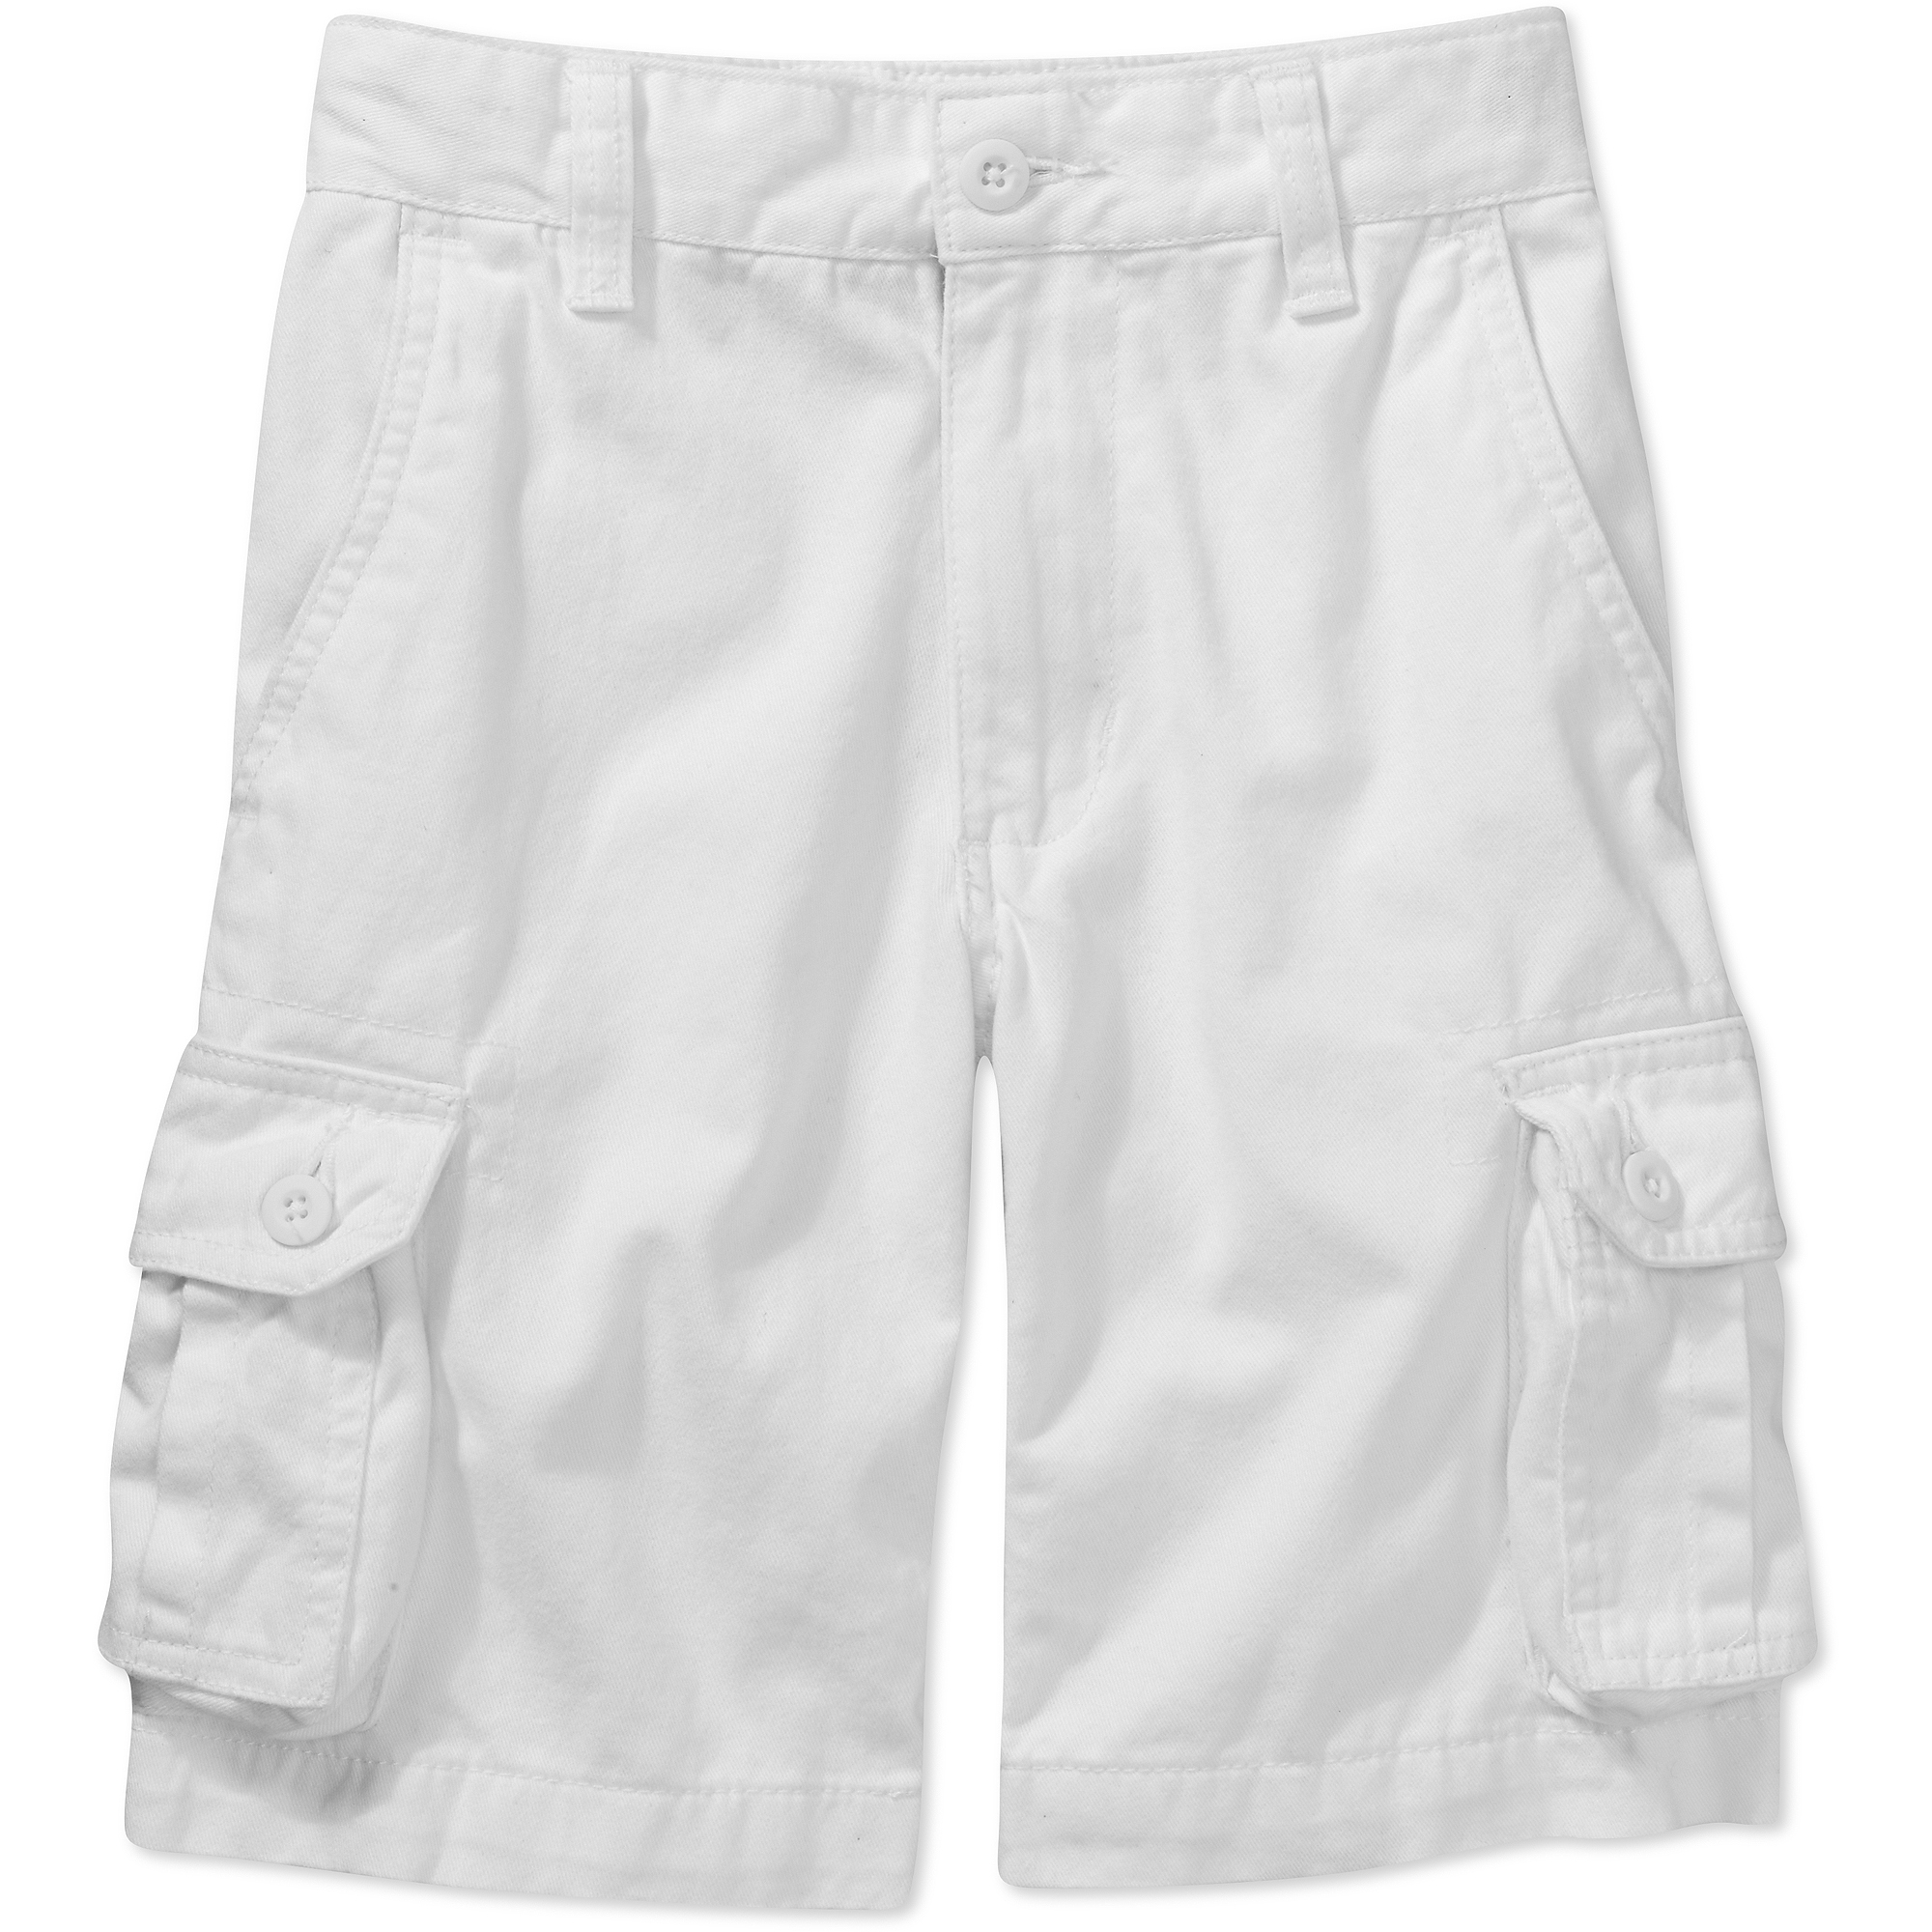 Faded Glory Boys' Solid Cargo Short